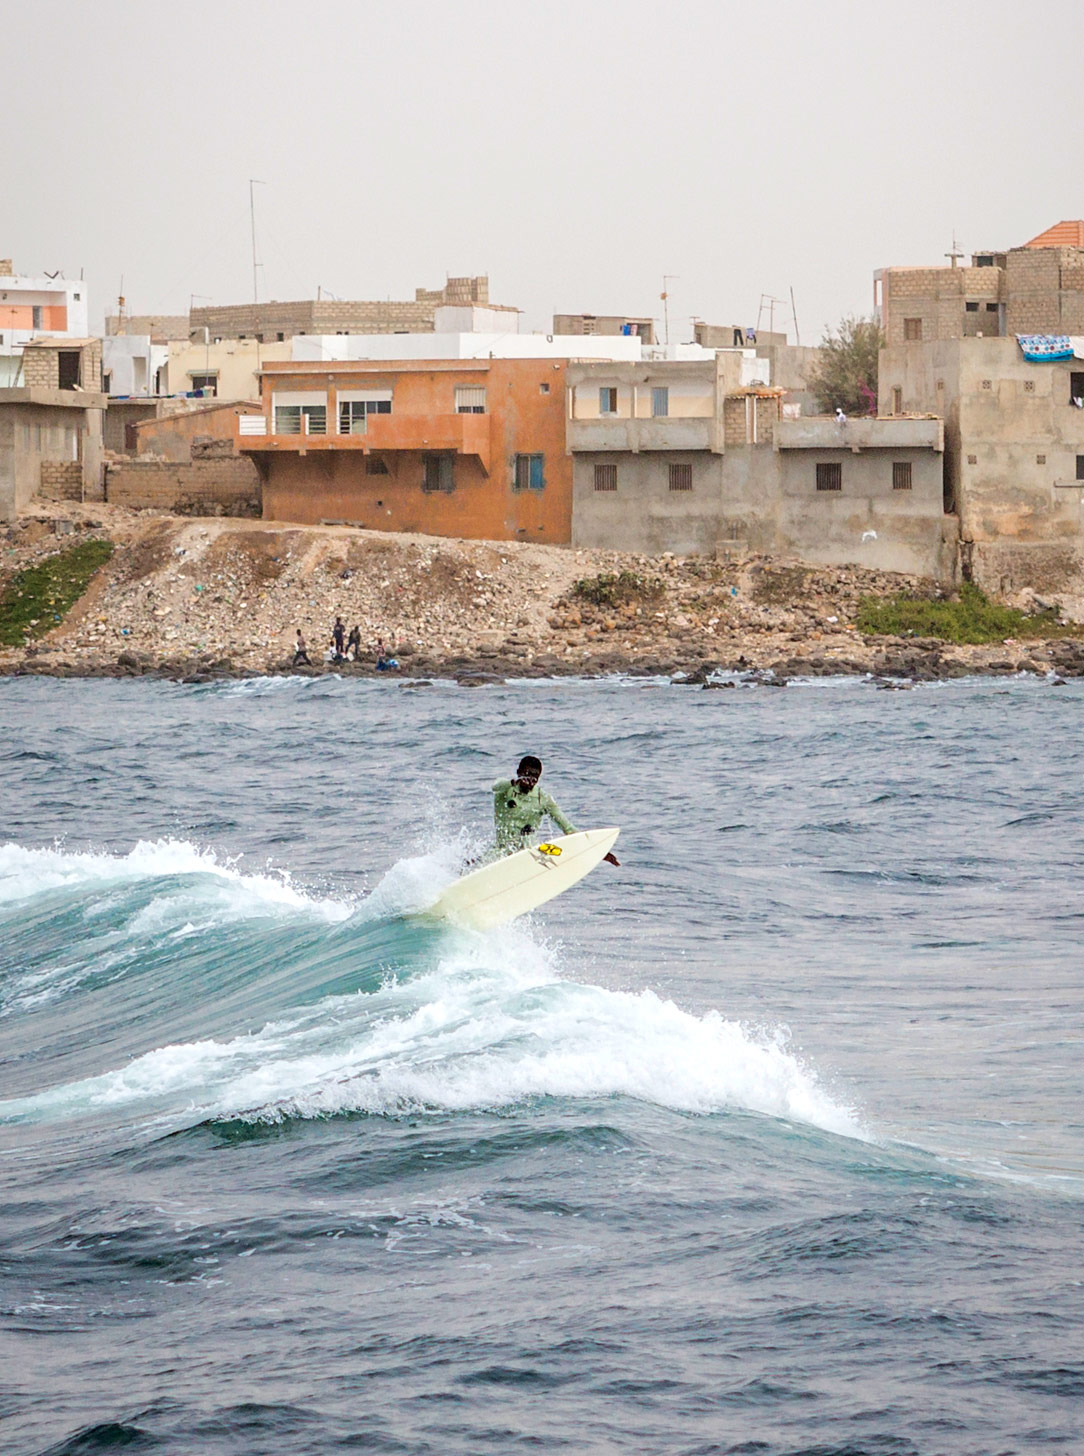 senegal-surfer-cutback_BobbiLe-Ba-Photography_2015-525